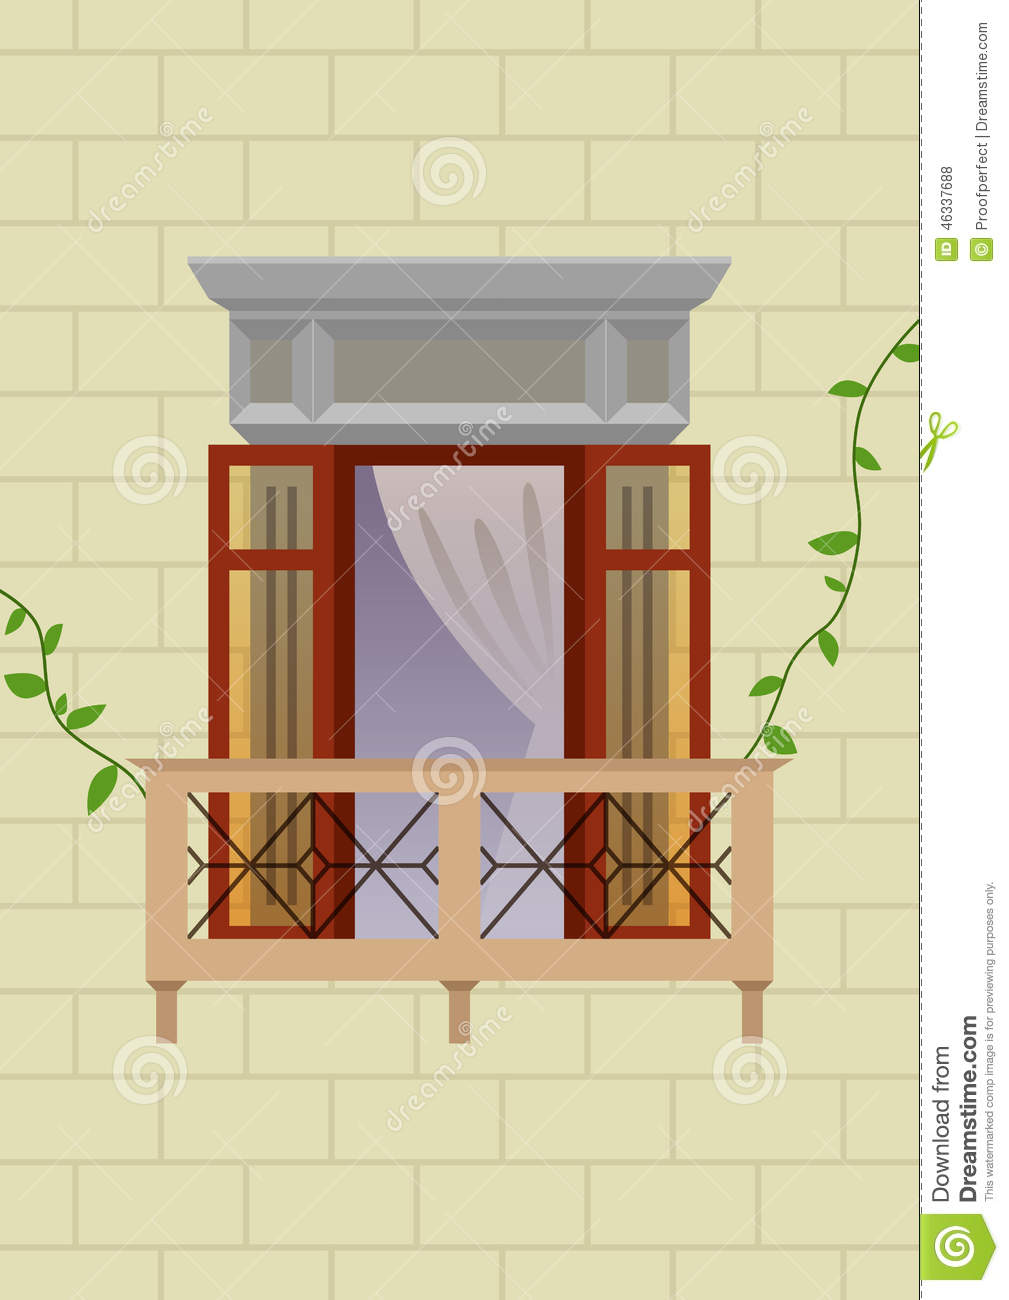 Old style balcony stock illustration illustration of for Balcony cartoon